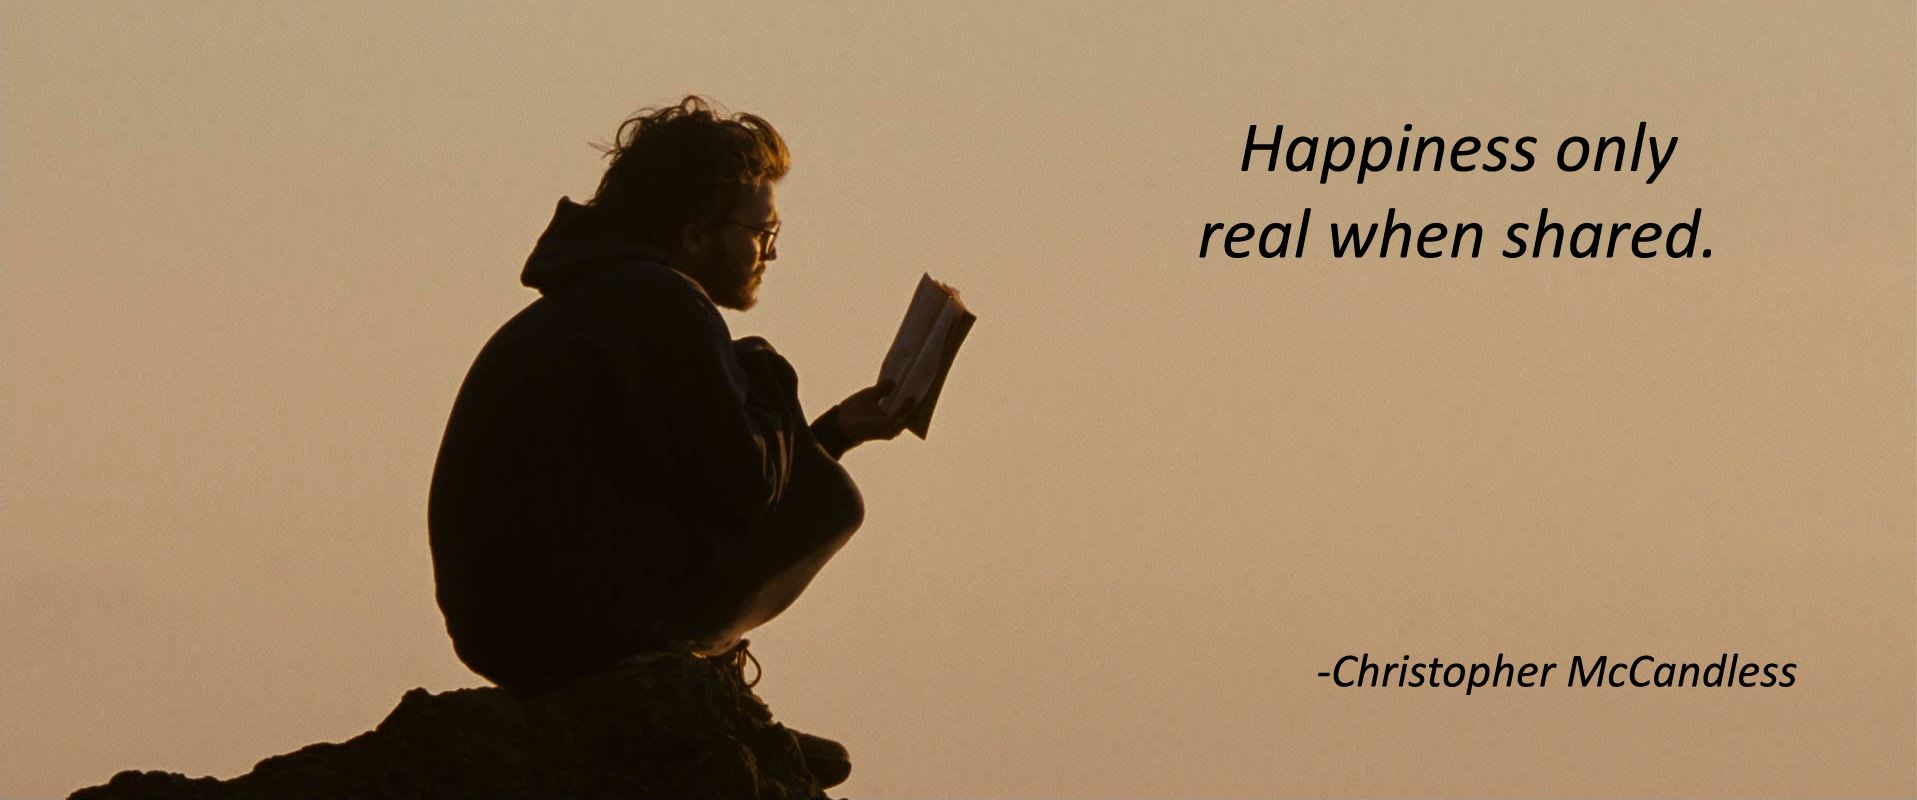 Happiness only real when shared. -Christopher McCand/ess https://inspirational.ly